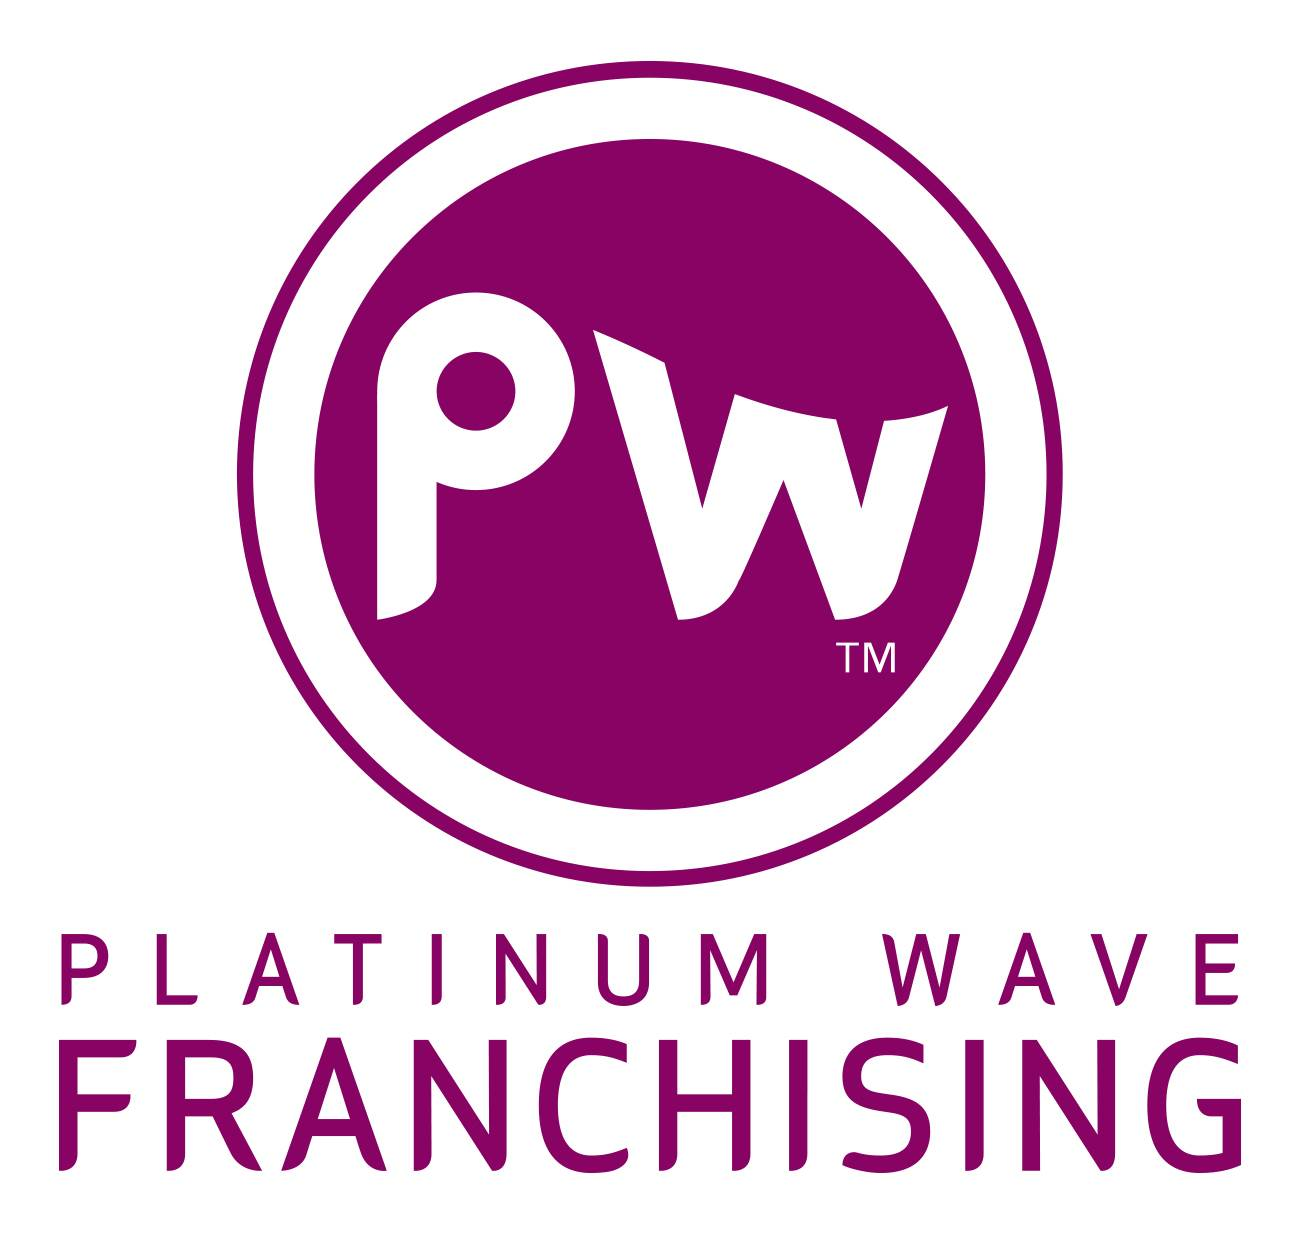 Platinum Wave Franchising